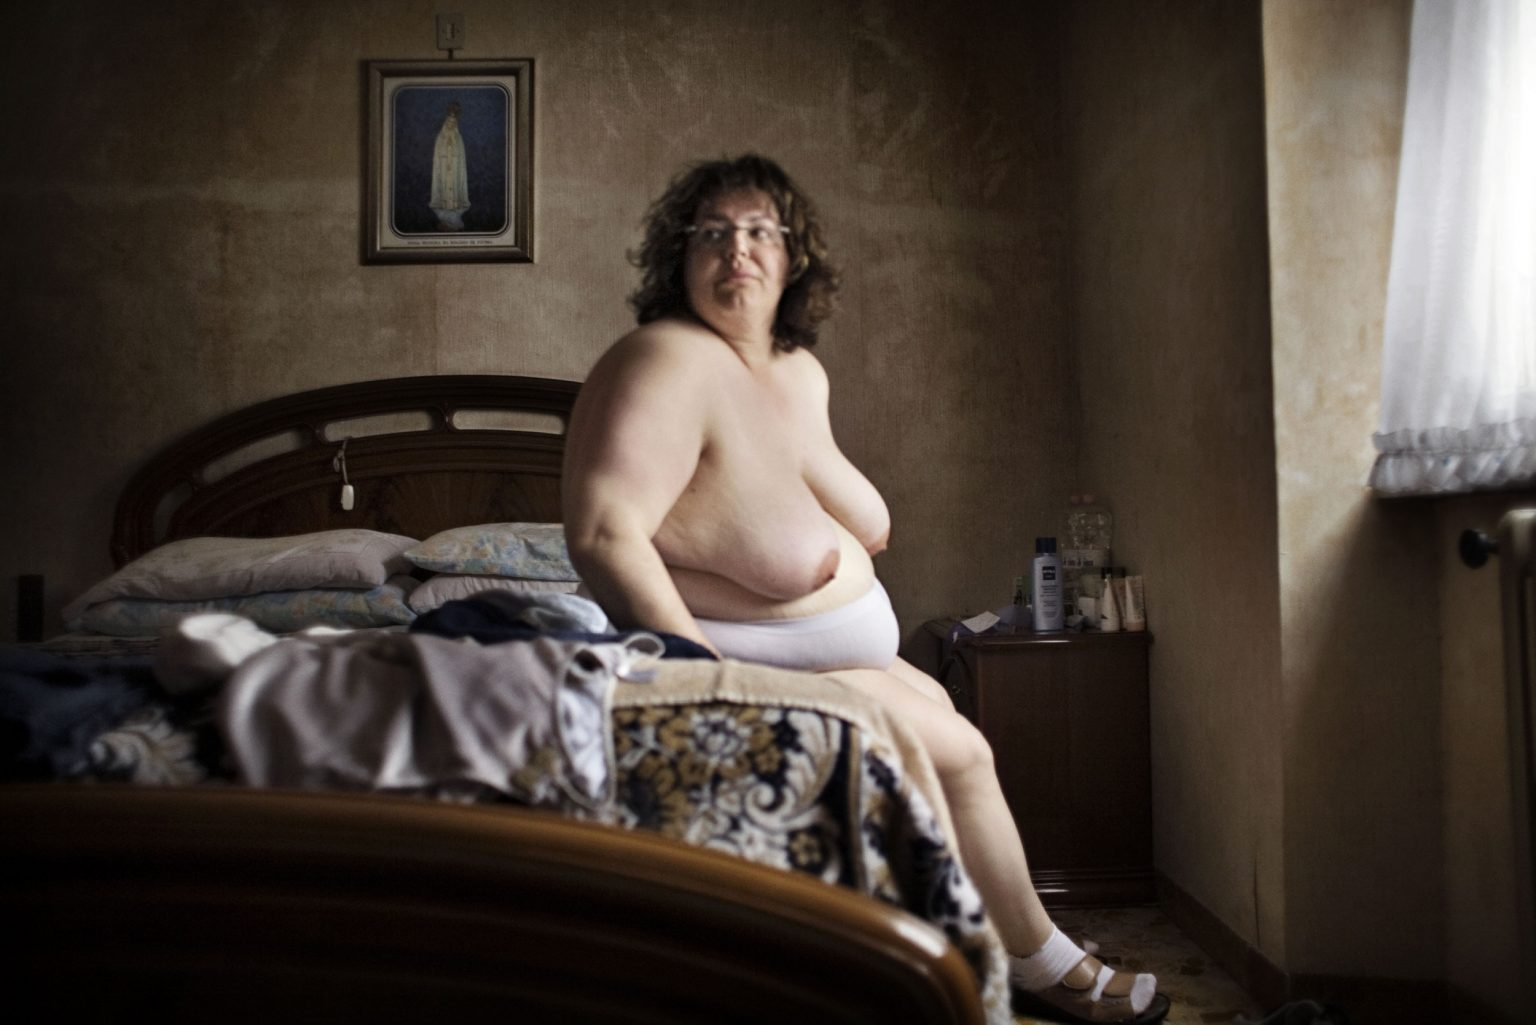 San Cesareo (Rome), April 2008 - Angela, a girl suffering from a serious obesity, at home, in her room